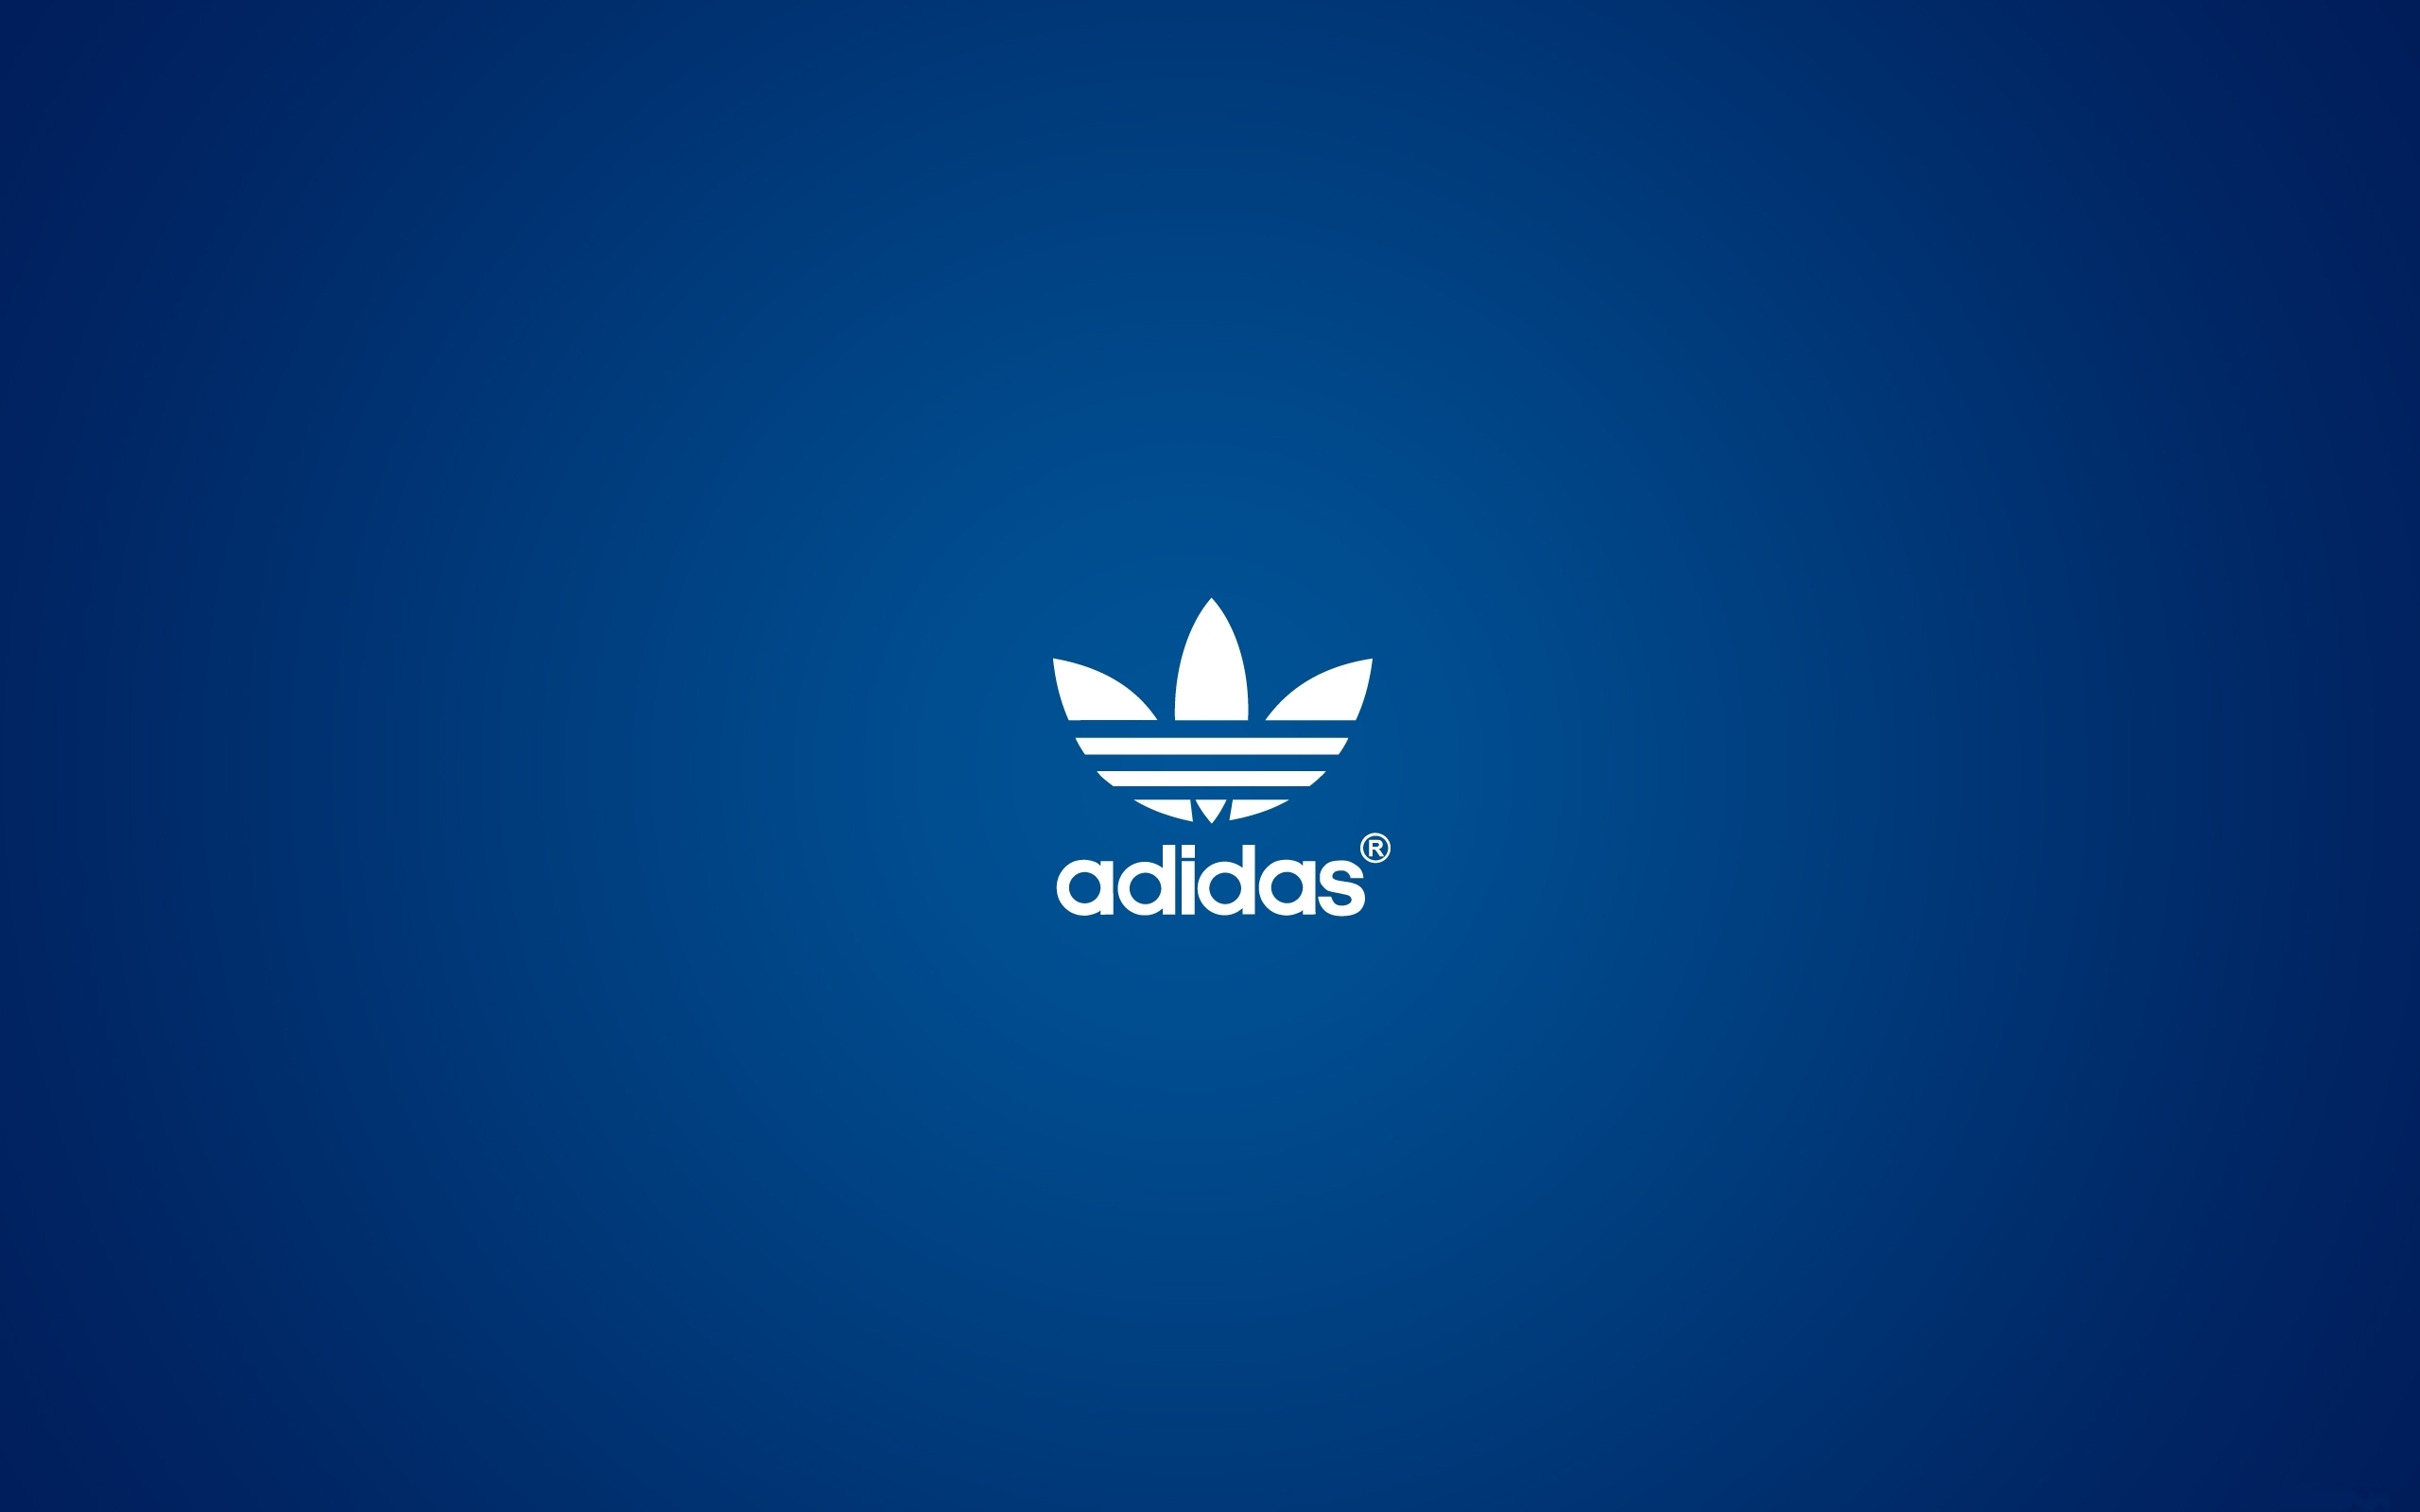 31 Adidas HD Wallpapers Background Images 2560x1600